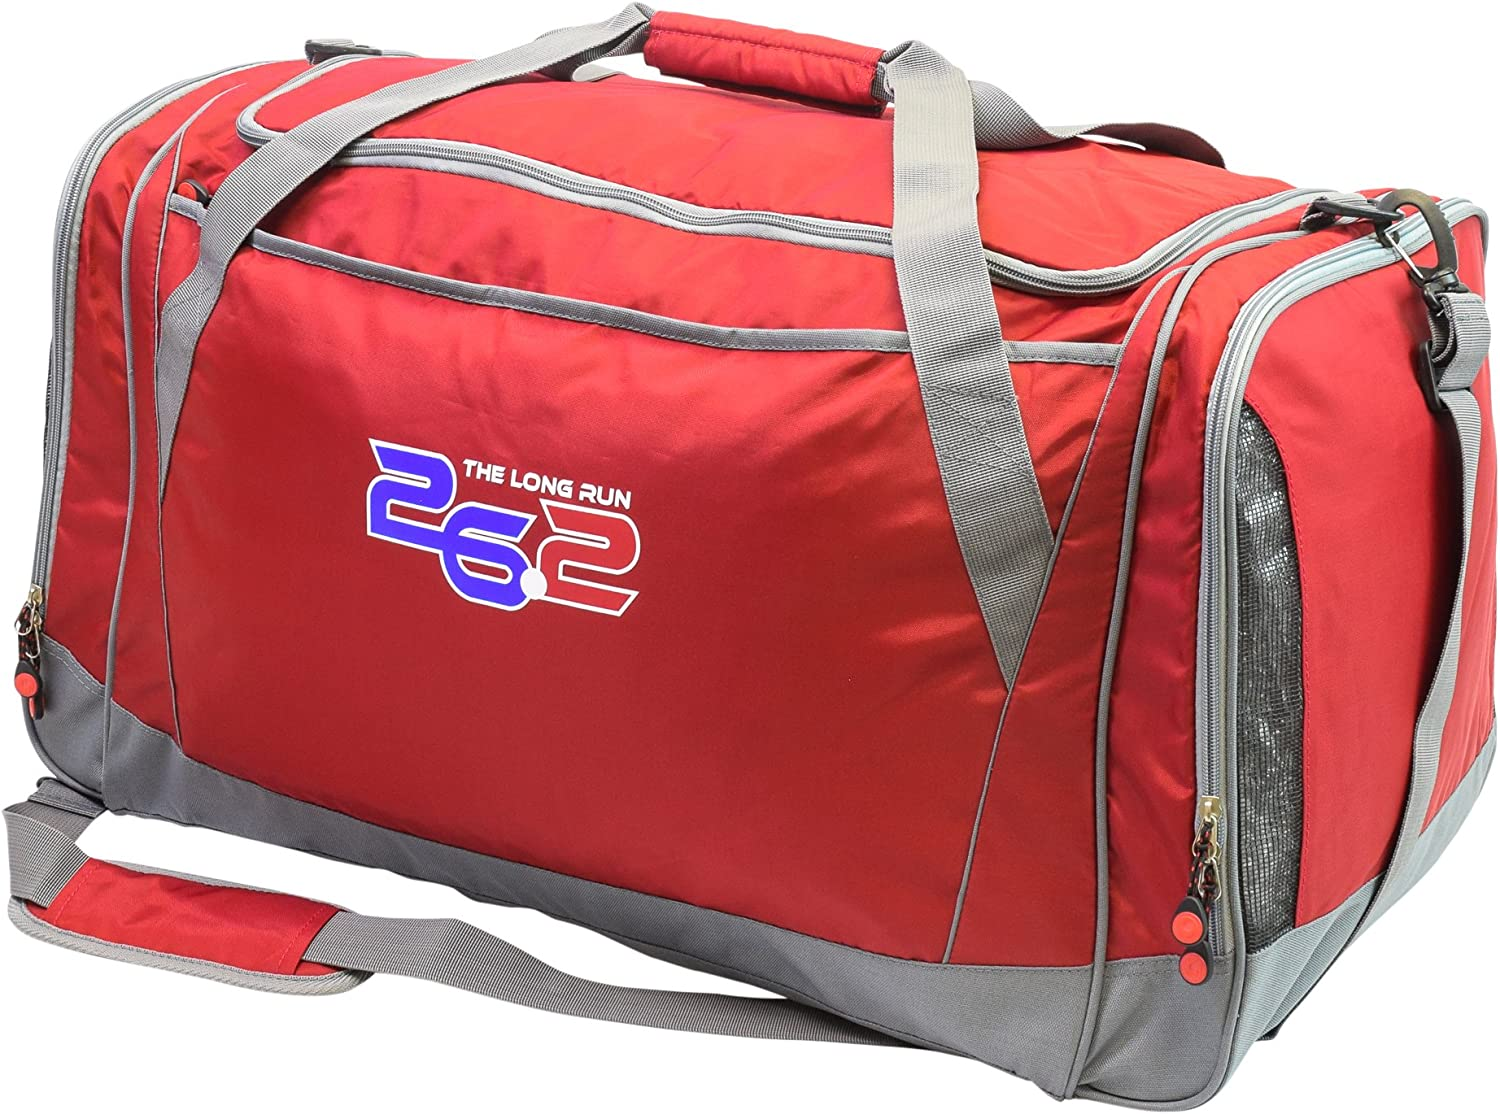 26.2 The Long Run Sports Duffle Bag Red One Size//28